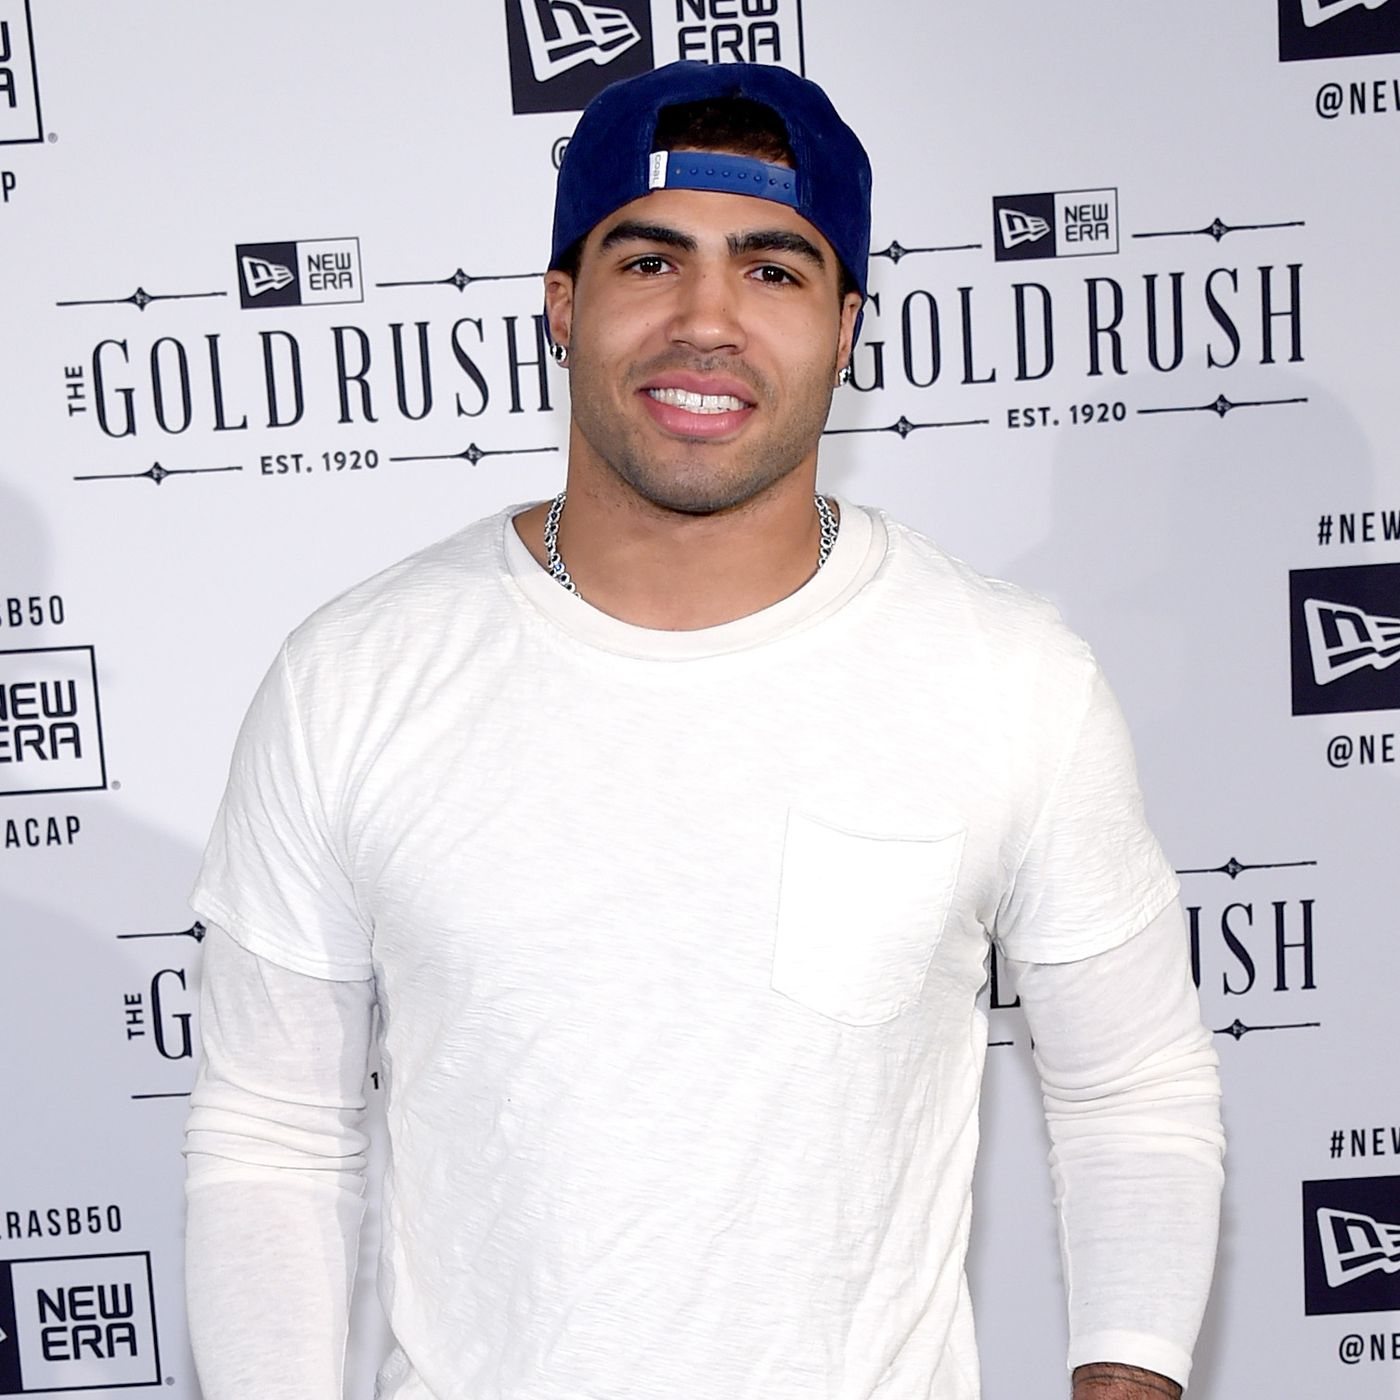 innovative design 59688 c89cf Eagles News: Someone tried to catfish Mychal Kendricks ...